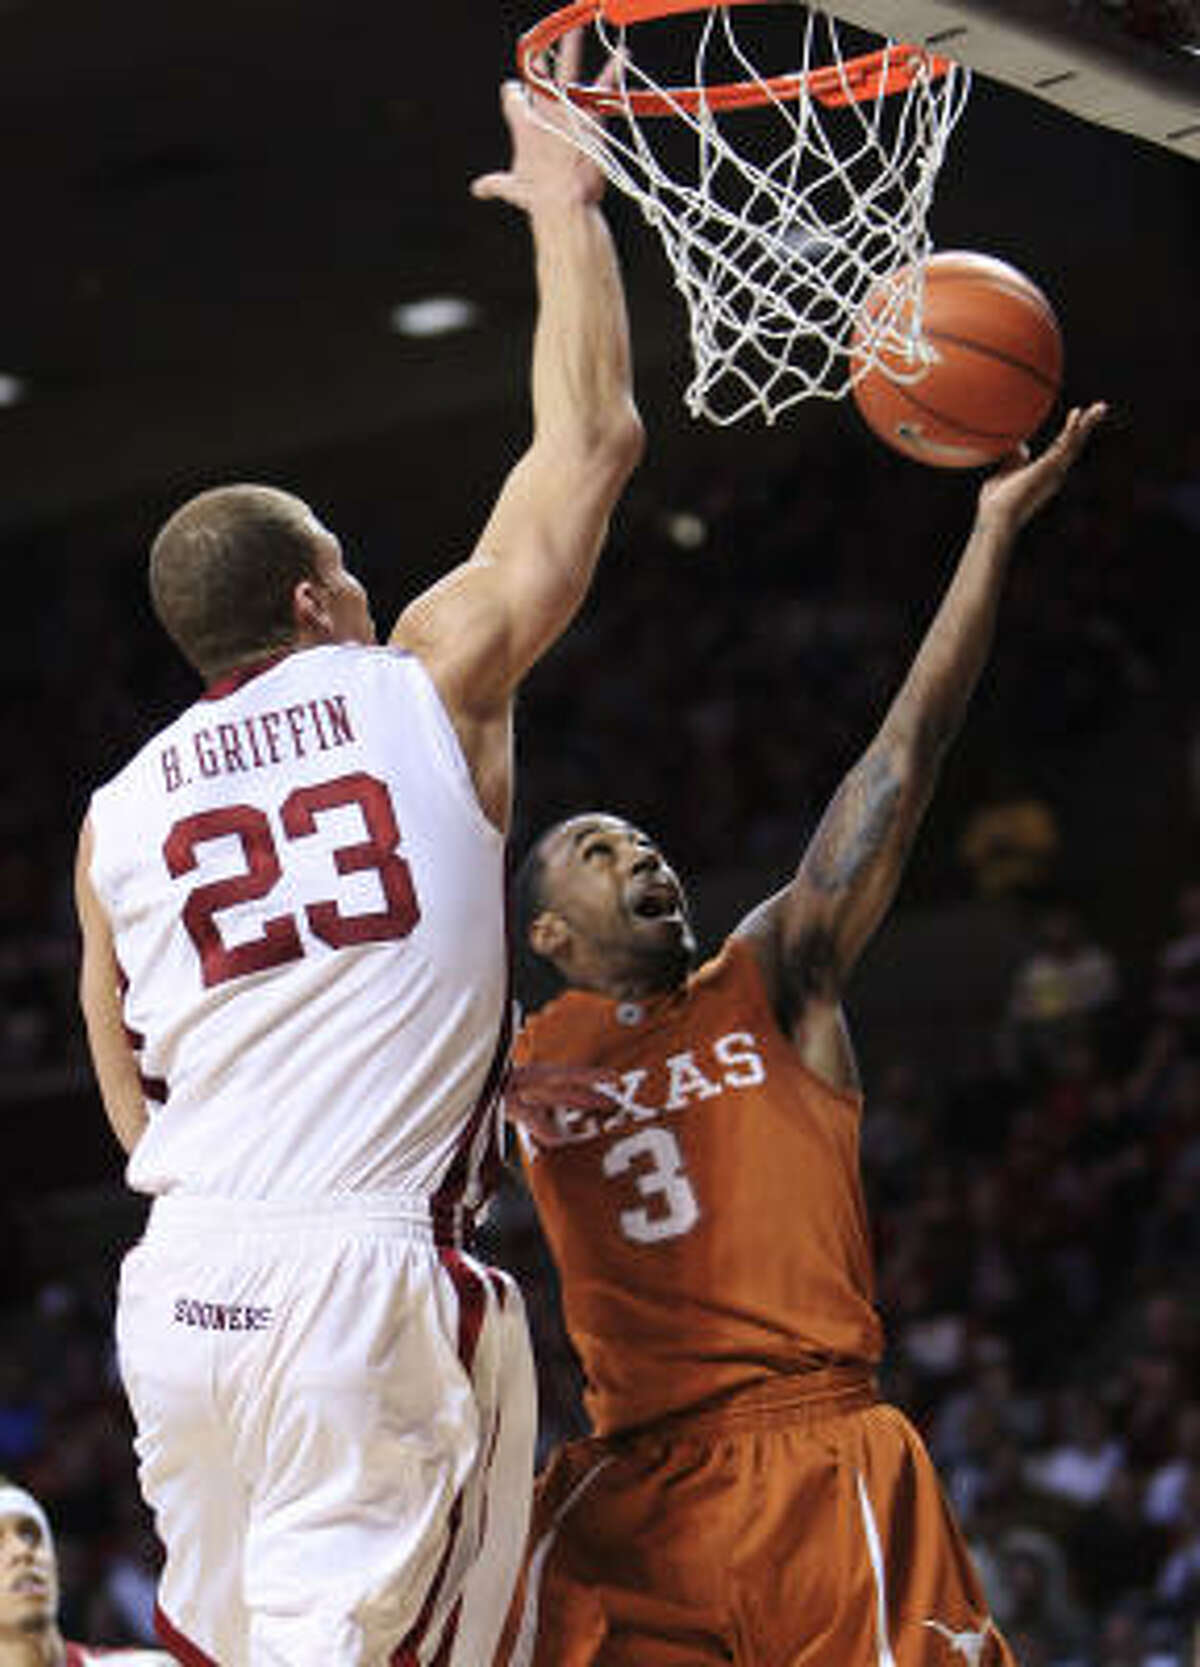 Texas guard A.J. Abrams, right, goes up for a layup in front of Oklahoma forward Blake Griffin during the first half.